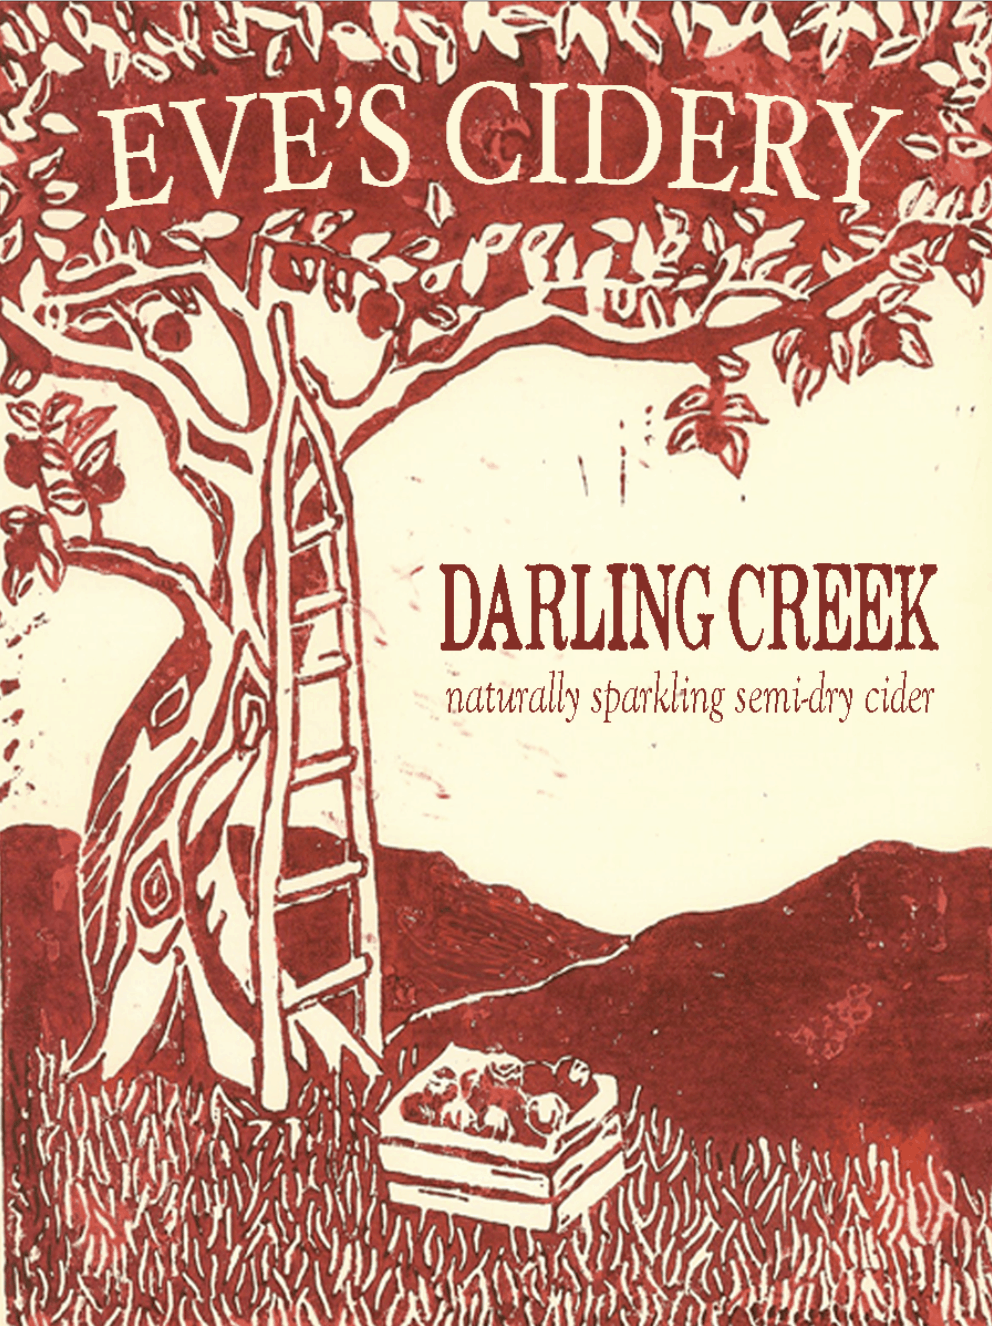 Darling Creek